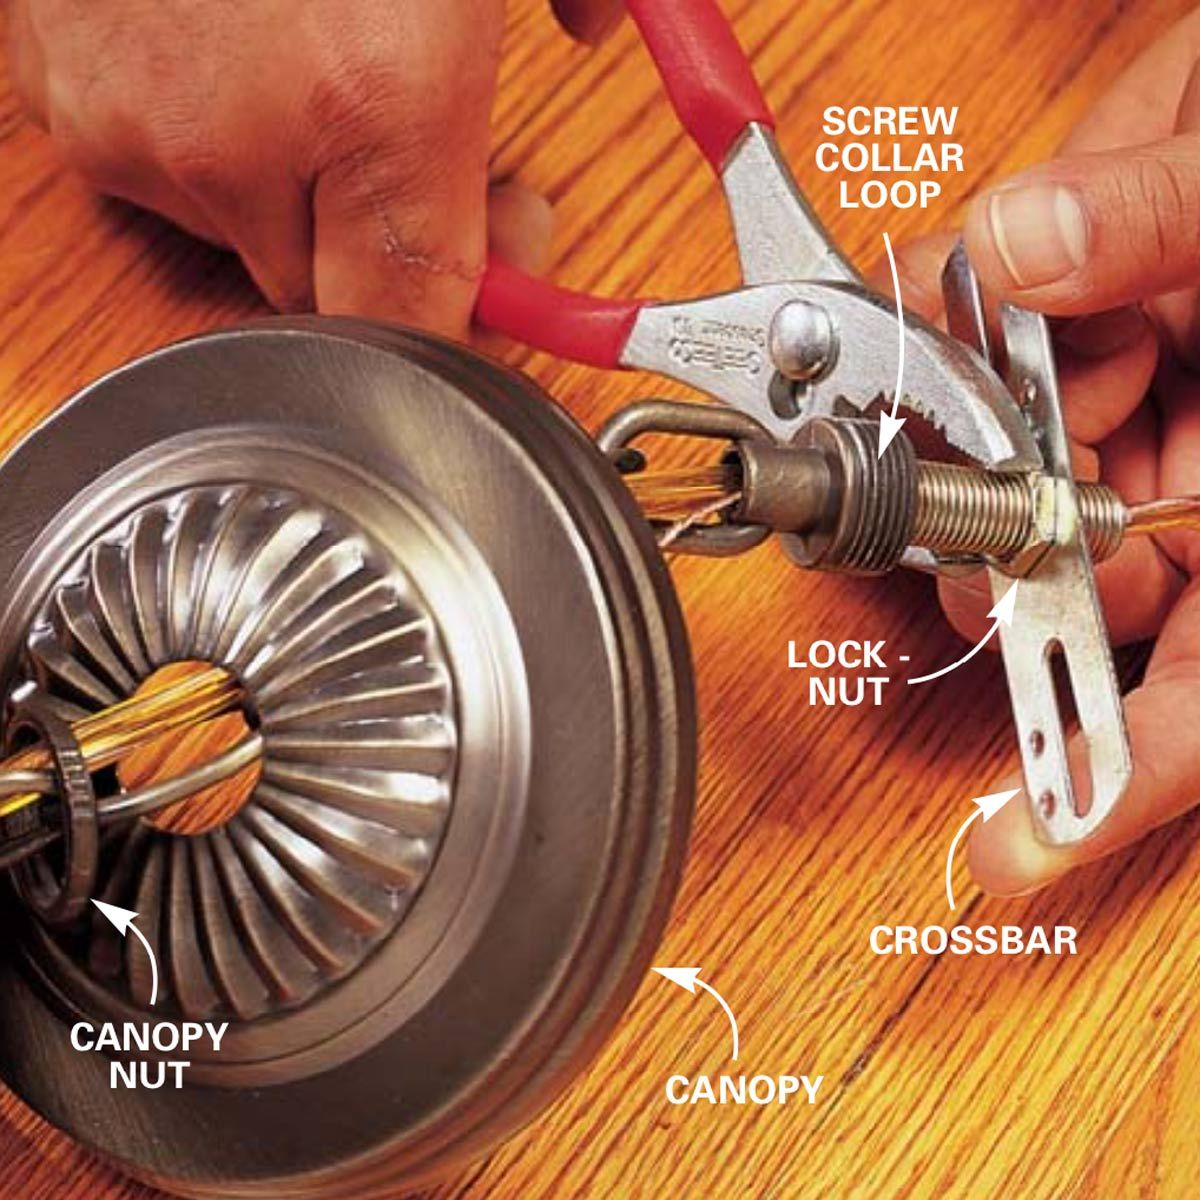 How To Hang A Ceiling Light Fixture Ceiling Lights Installing Light Fixture Light Fixtures